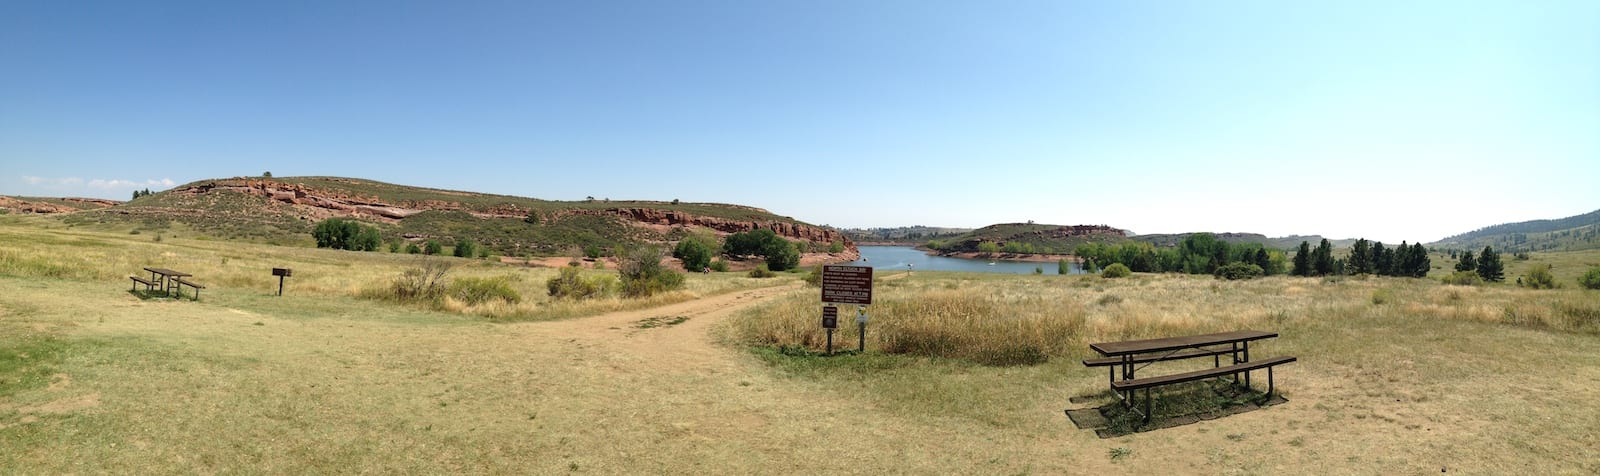 Lory State Park Picnic Areas